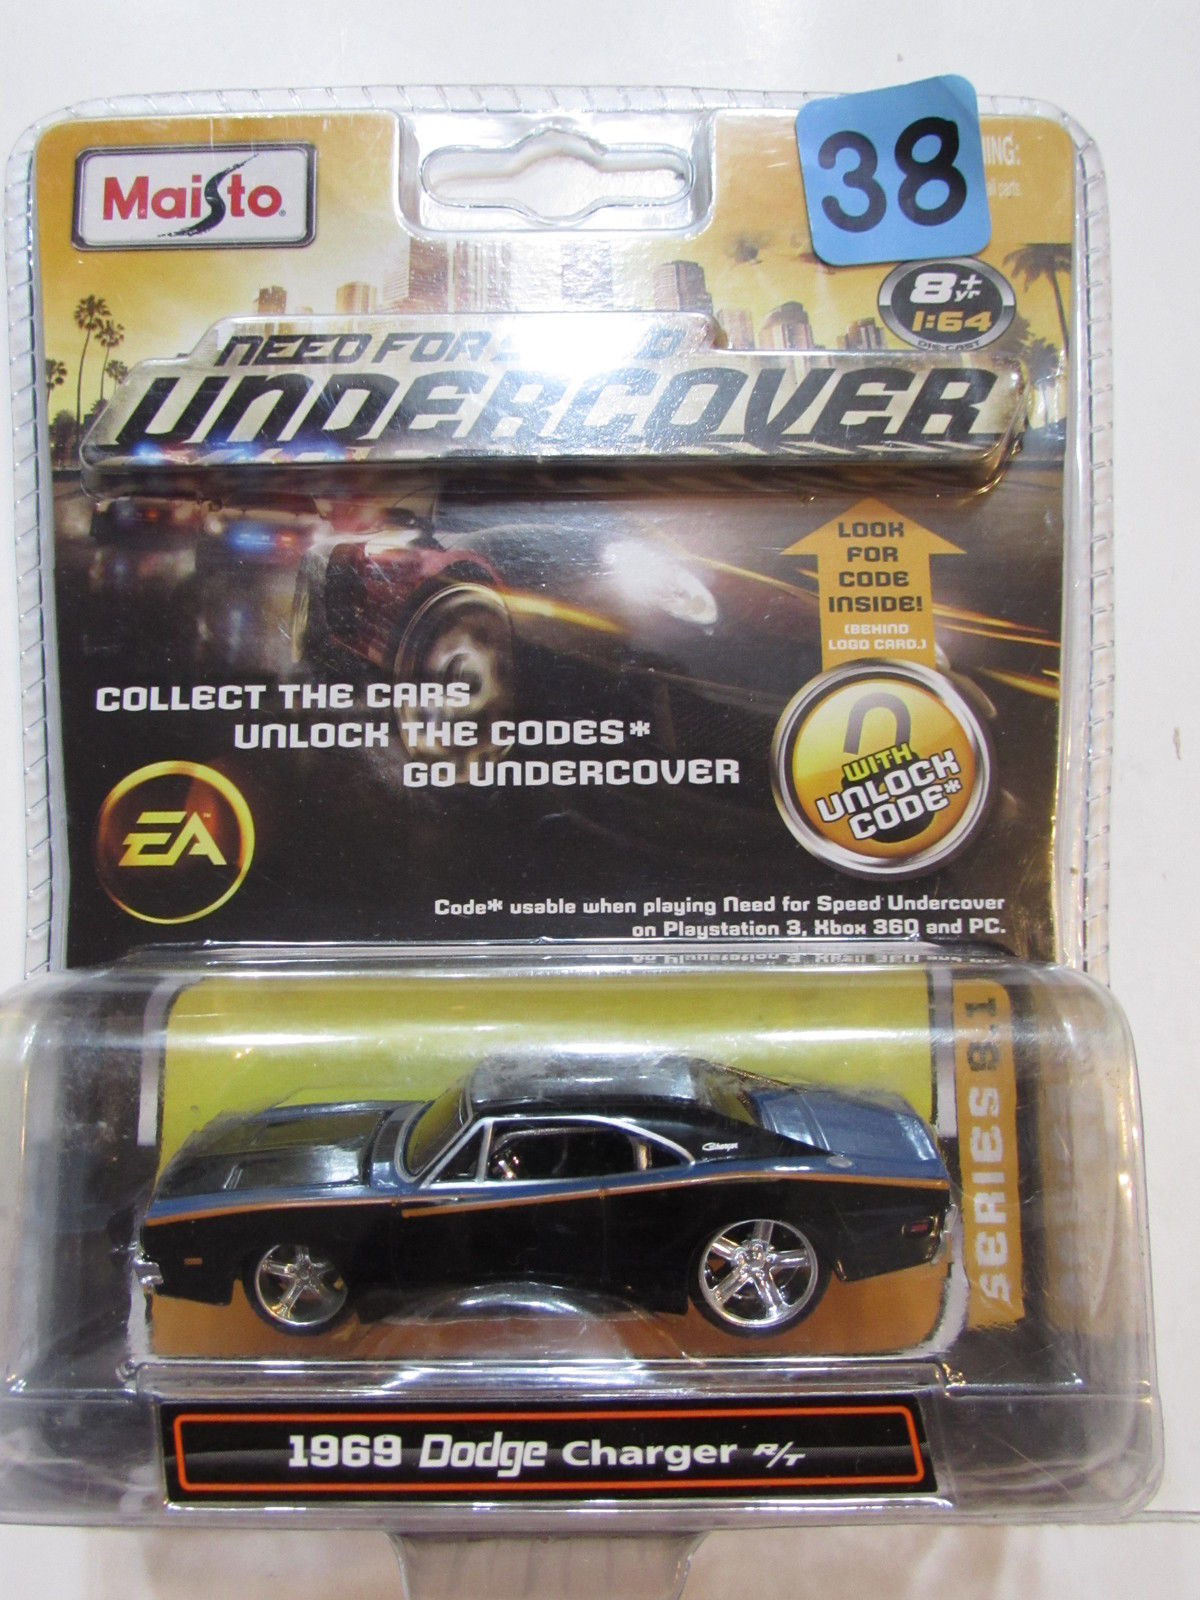 MAISTO NEED FOR SPEED UNDERCOVER EA 1969 DODGE CHARGER R/T SCALE 1:64